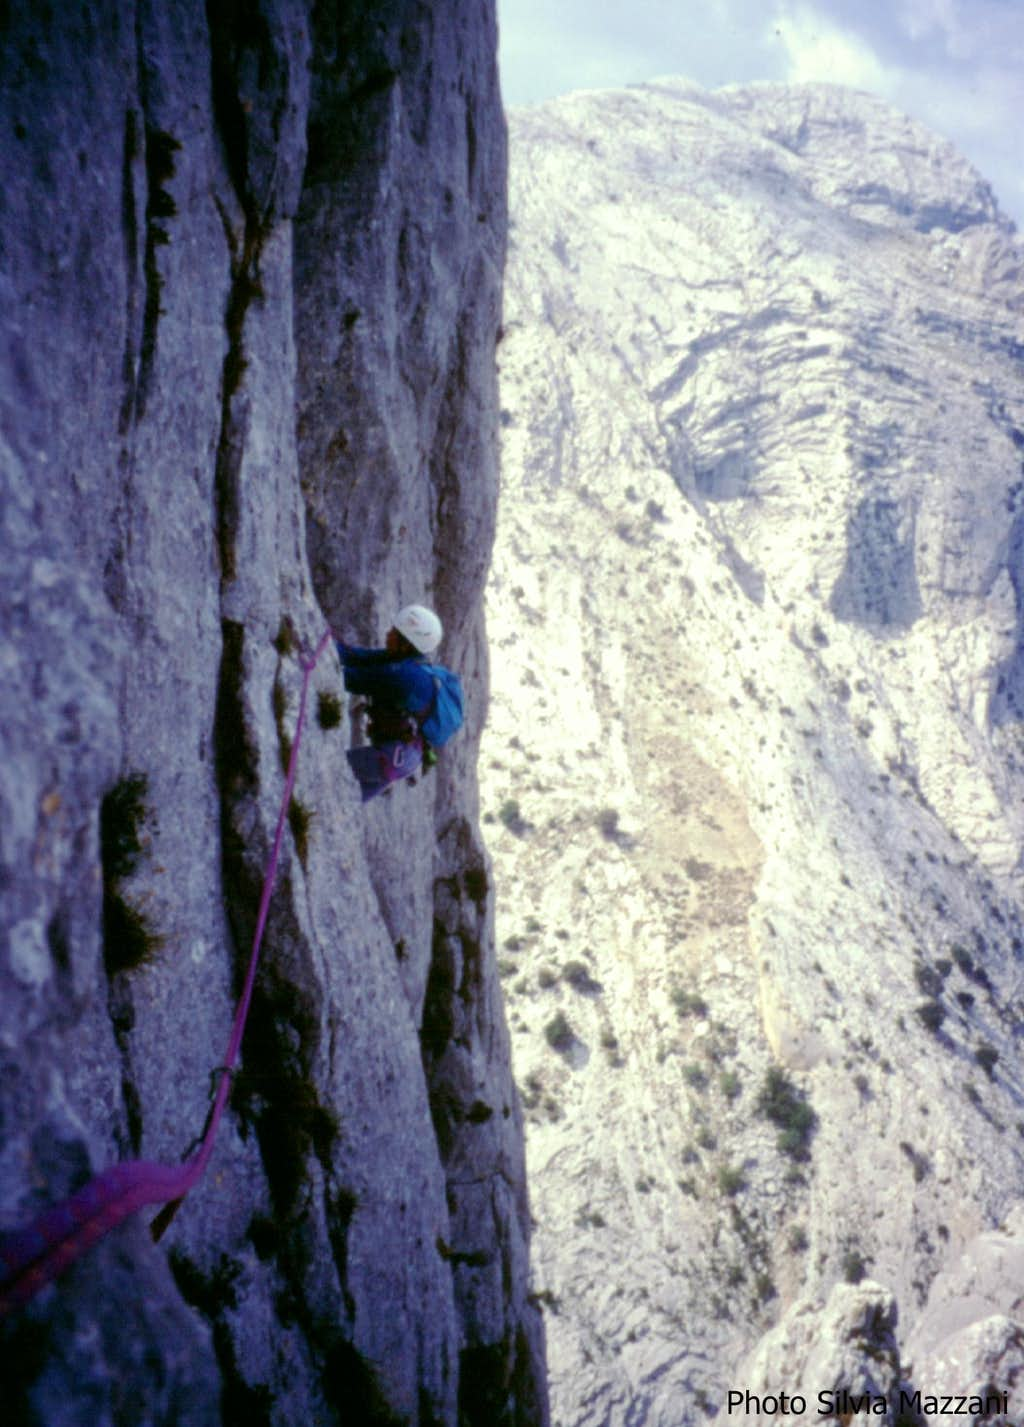 Exposed traverse on Legione Reale Truppe Leggere